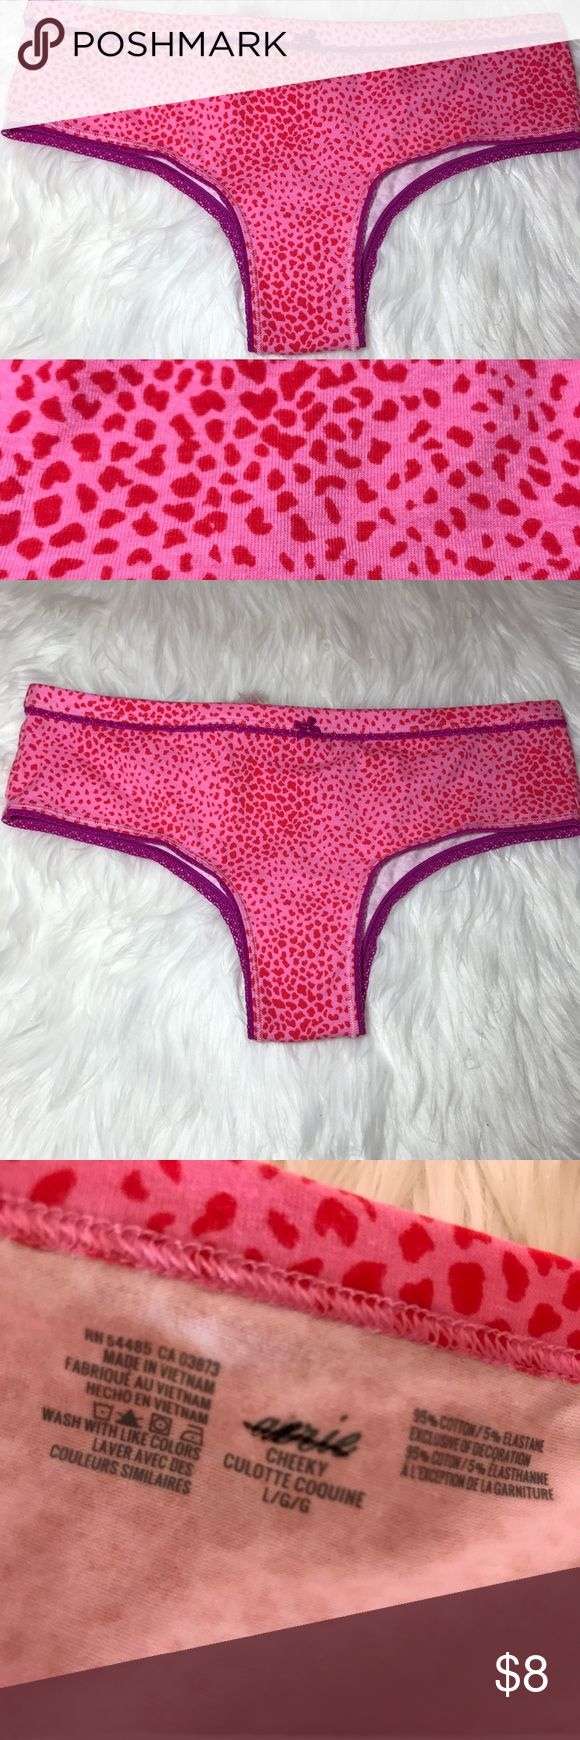 NWT Aerie Cheeky Panties New with tags  Bundle with other item for a discount    -add your items to a bundle so I can make you a discount offer!  -some items prices are firm unless bundled  -no holds  -no trades  -same day or next day shipping   10/09 aerie Intimates & Sleepwear Panties